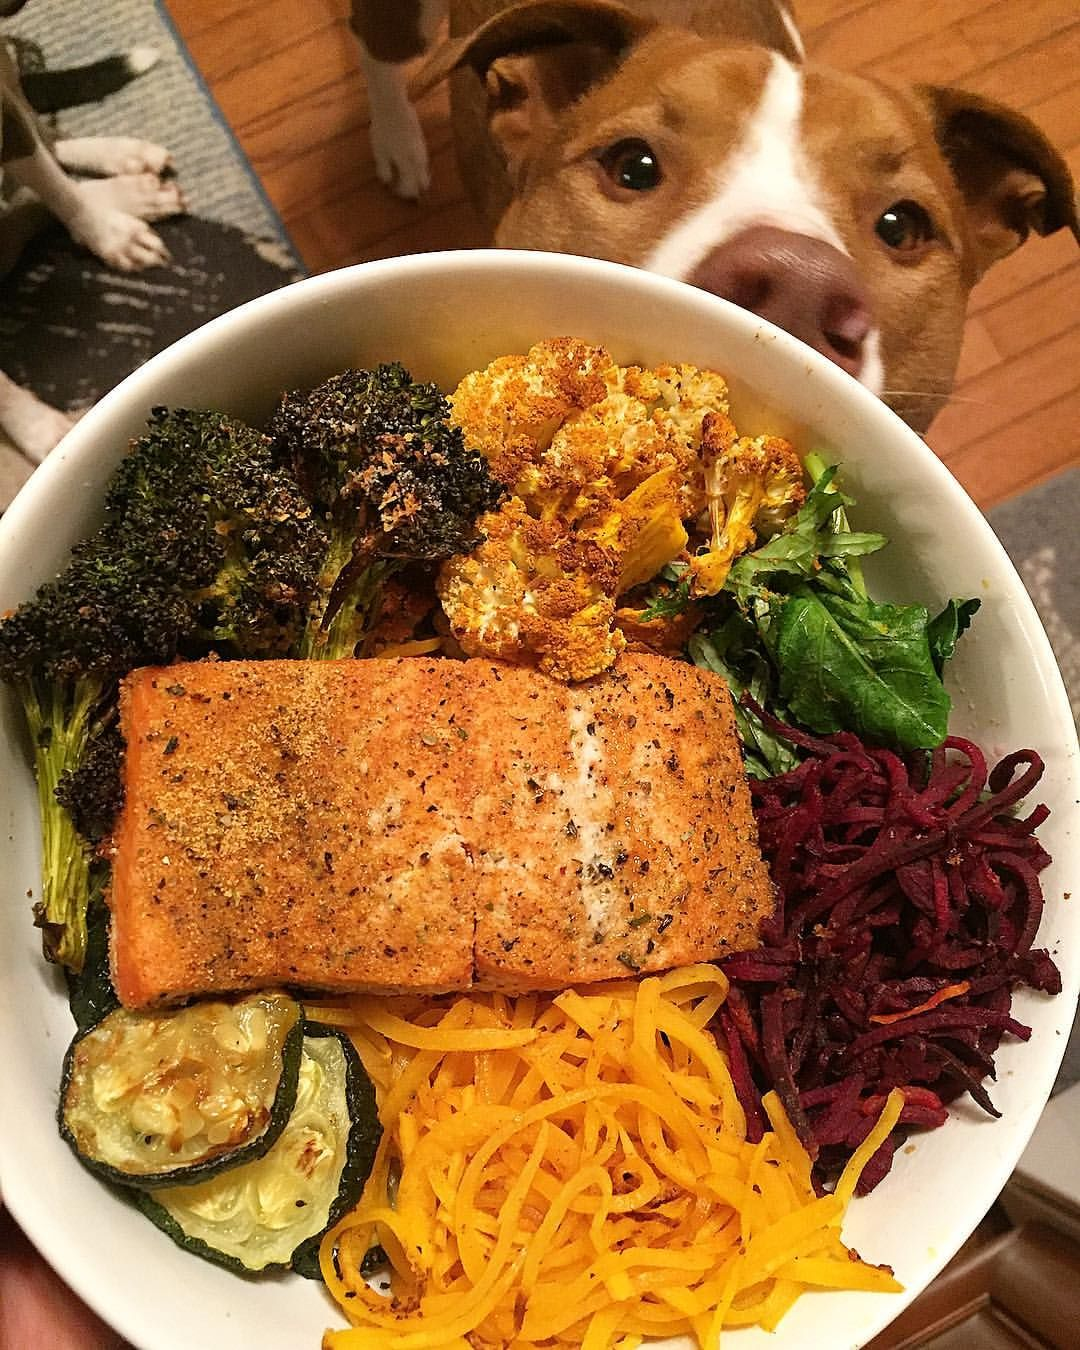 (@amber_fitfoodyogi) Another night, another #macrobowl and my favorite #photobomber 🐶🐾 The deets • Baked wild caught salmon + roasted broccoli (w/nutritional yeast), turmeric cauliflower and zucchini in #avocadooil+ lightly sautéed baby kale + spiraled beets and butternut squash ... fishfood amstaff